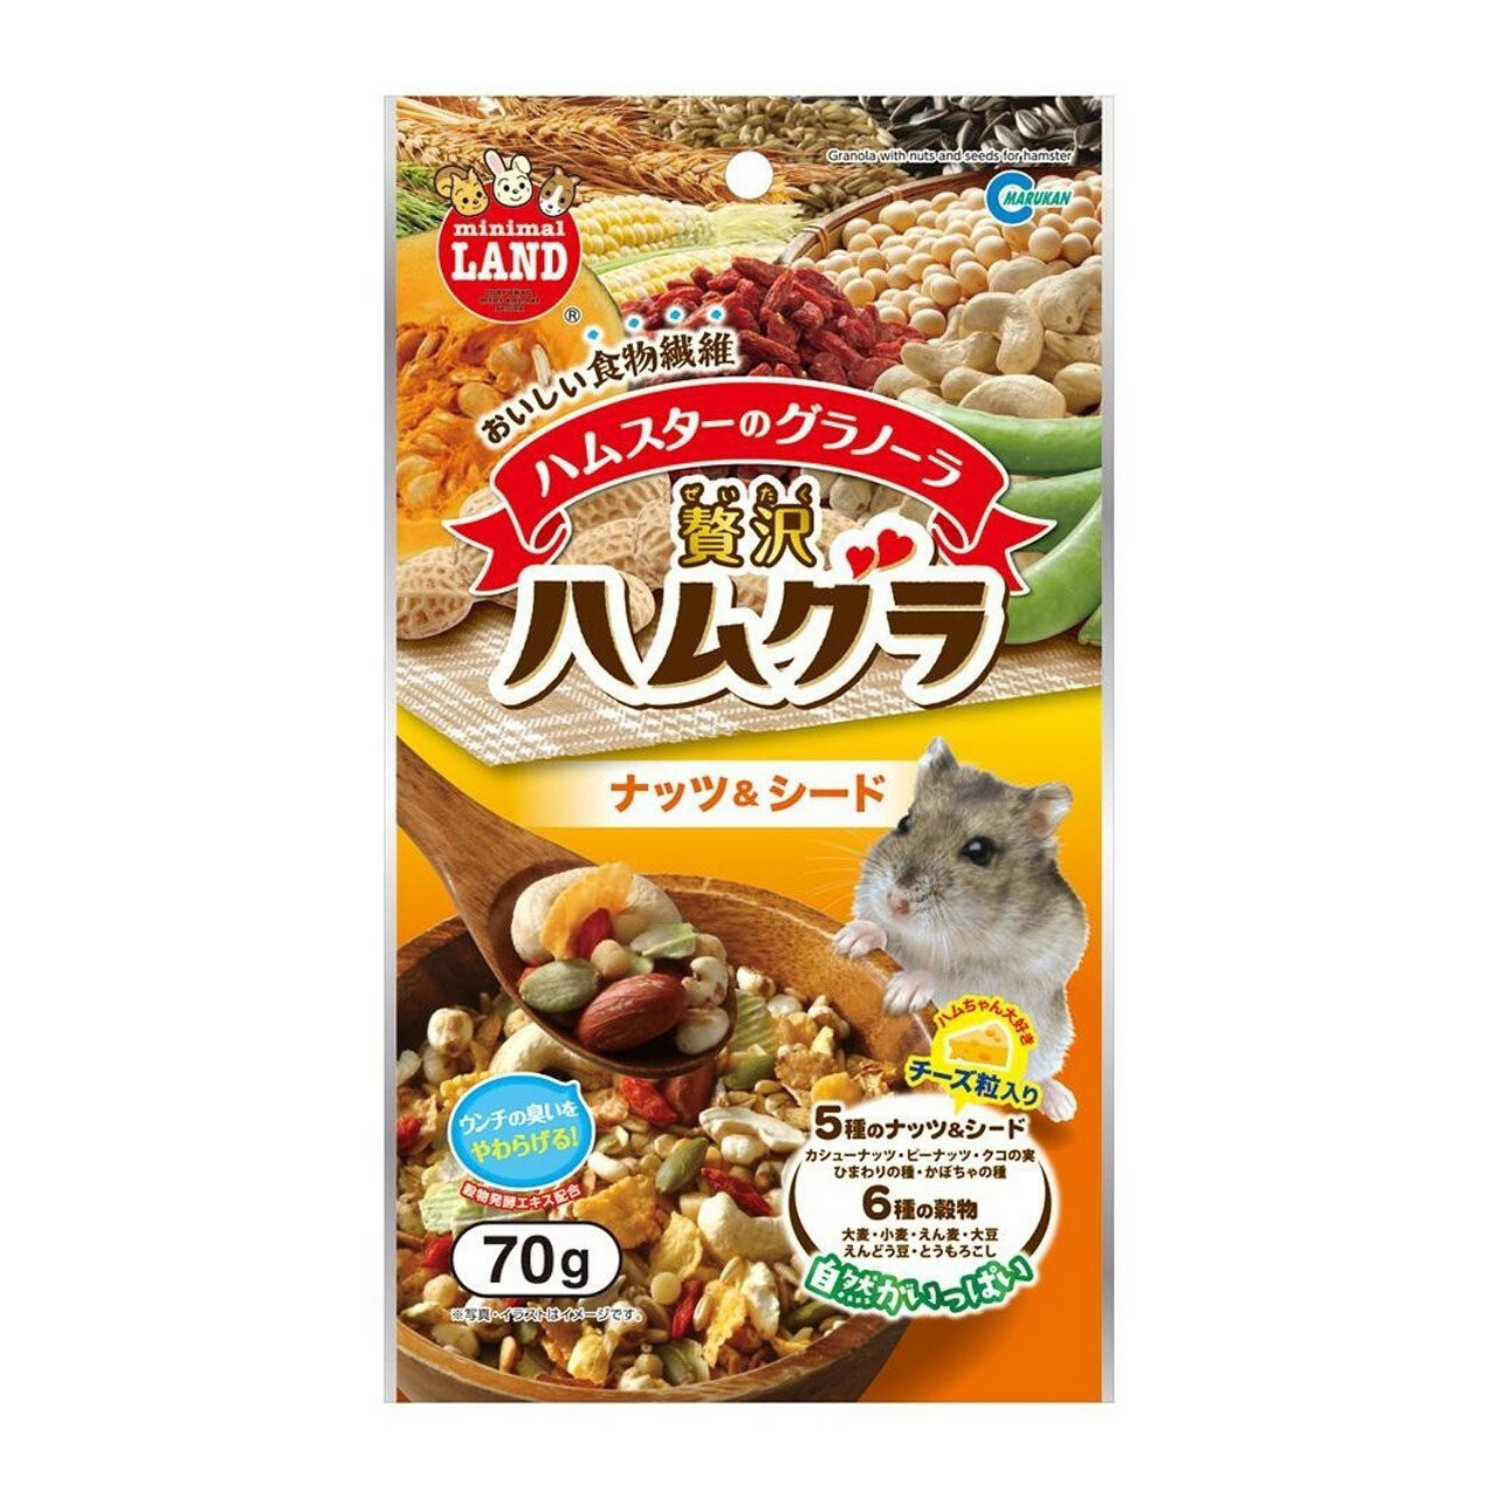 Marukan Granola with Nuts & Seeds for Hamster - 70g